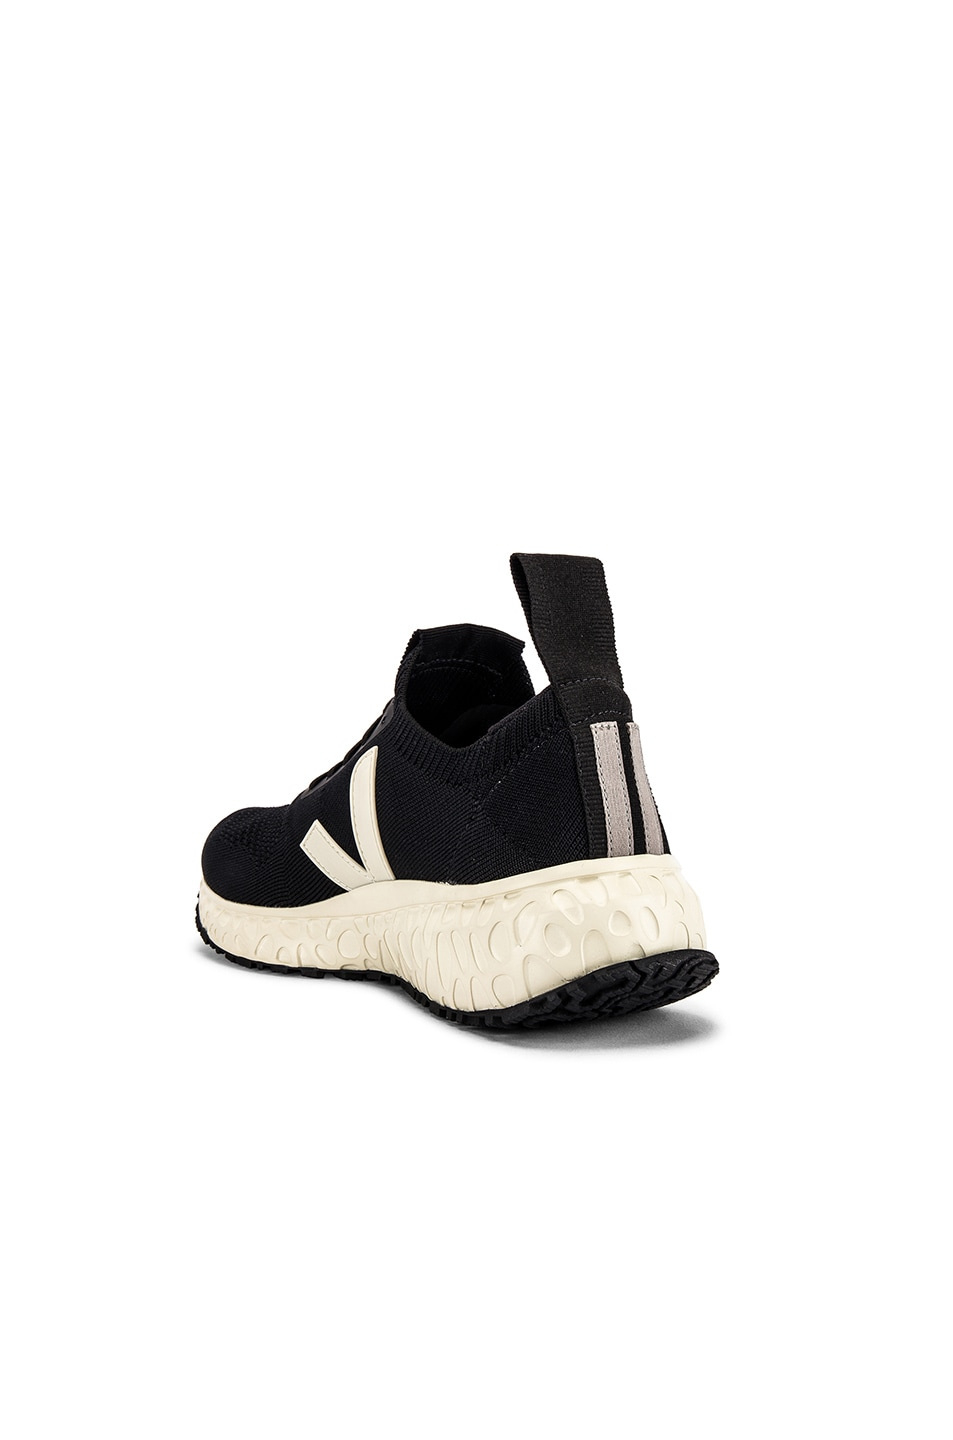 Image 3 of Rick Owens x Veja Sneakers in Black